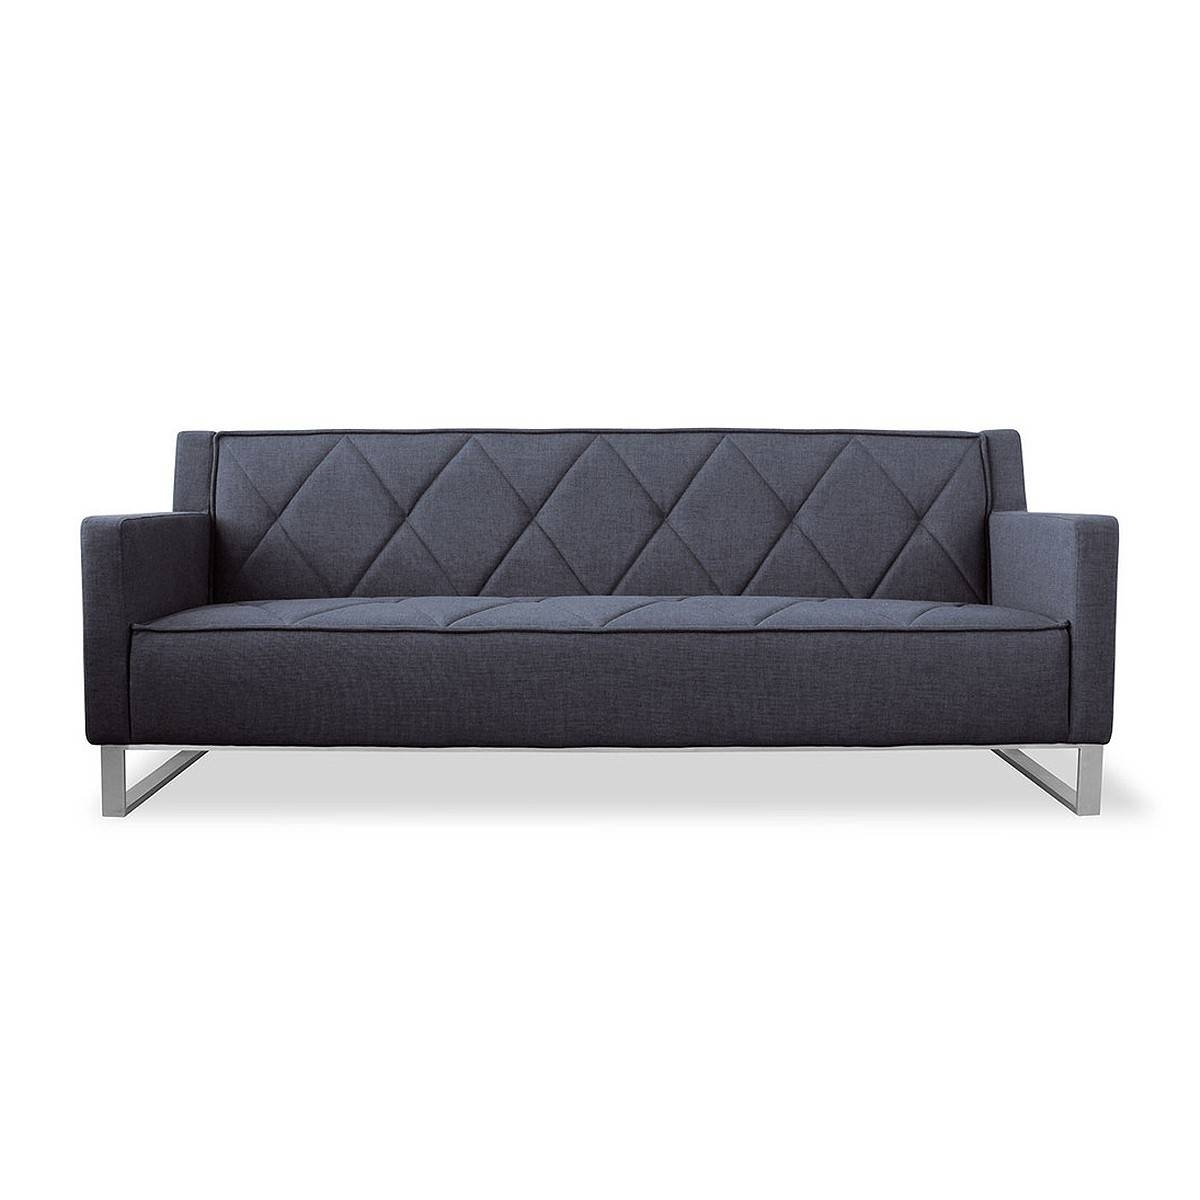 Gus Modern – Thatcher 3 Seater Sofa – Modern Sofas For Your Living Throughout Modern 3 Seater Sofas (View 9 of 30)